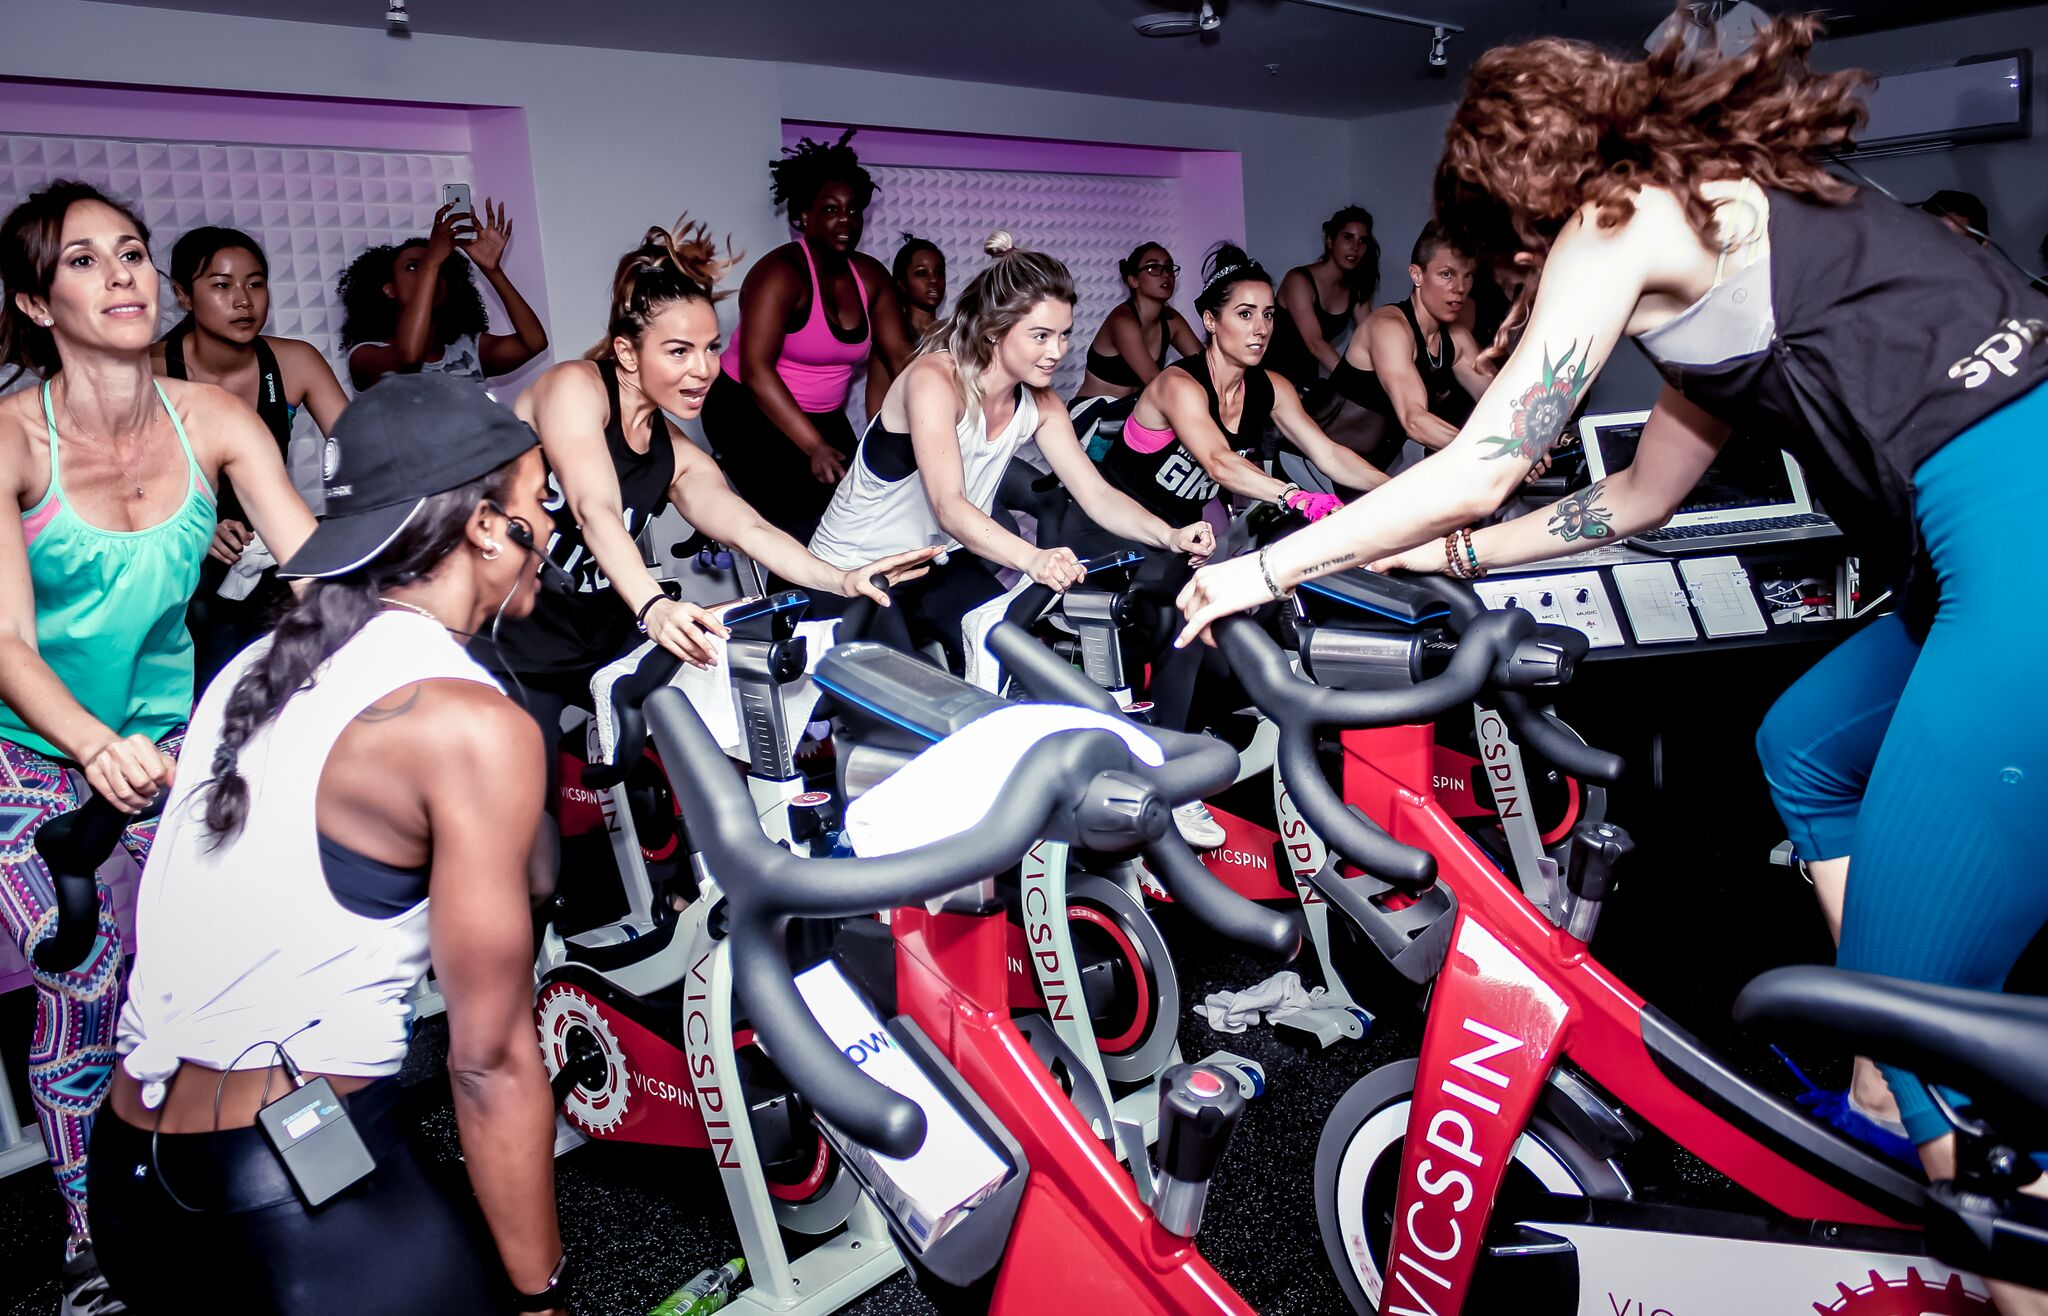 Here's the 411 on Victoria Park's new spin studio